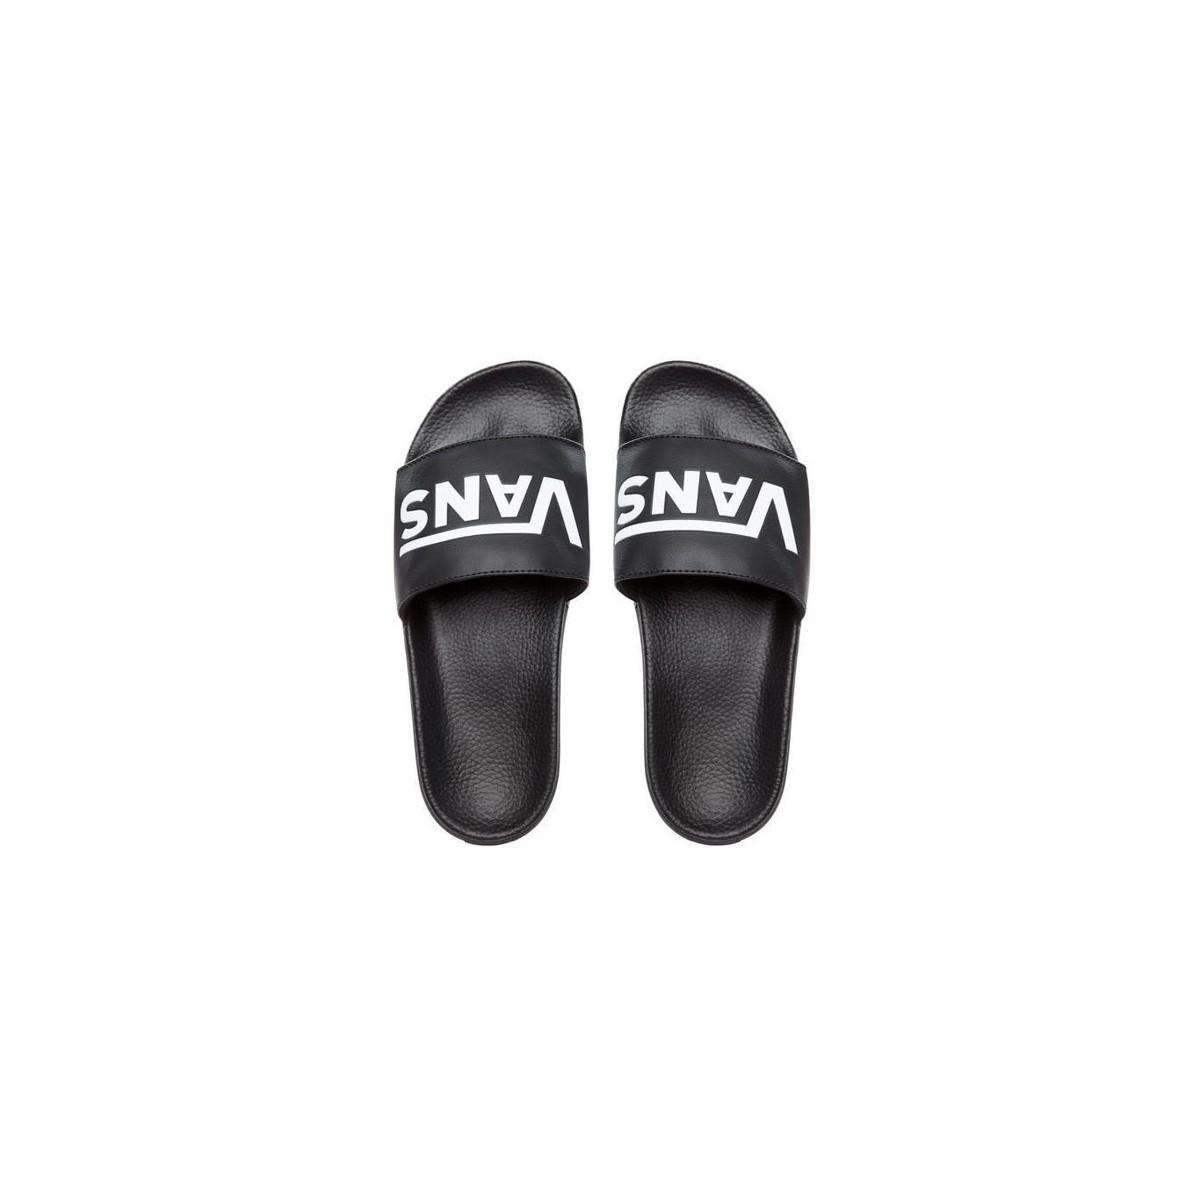 Vans Chanclas Slide-on Men s In Black in Black for Men - Lyst e0eb99f2ecd